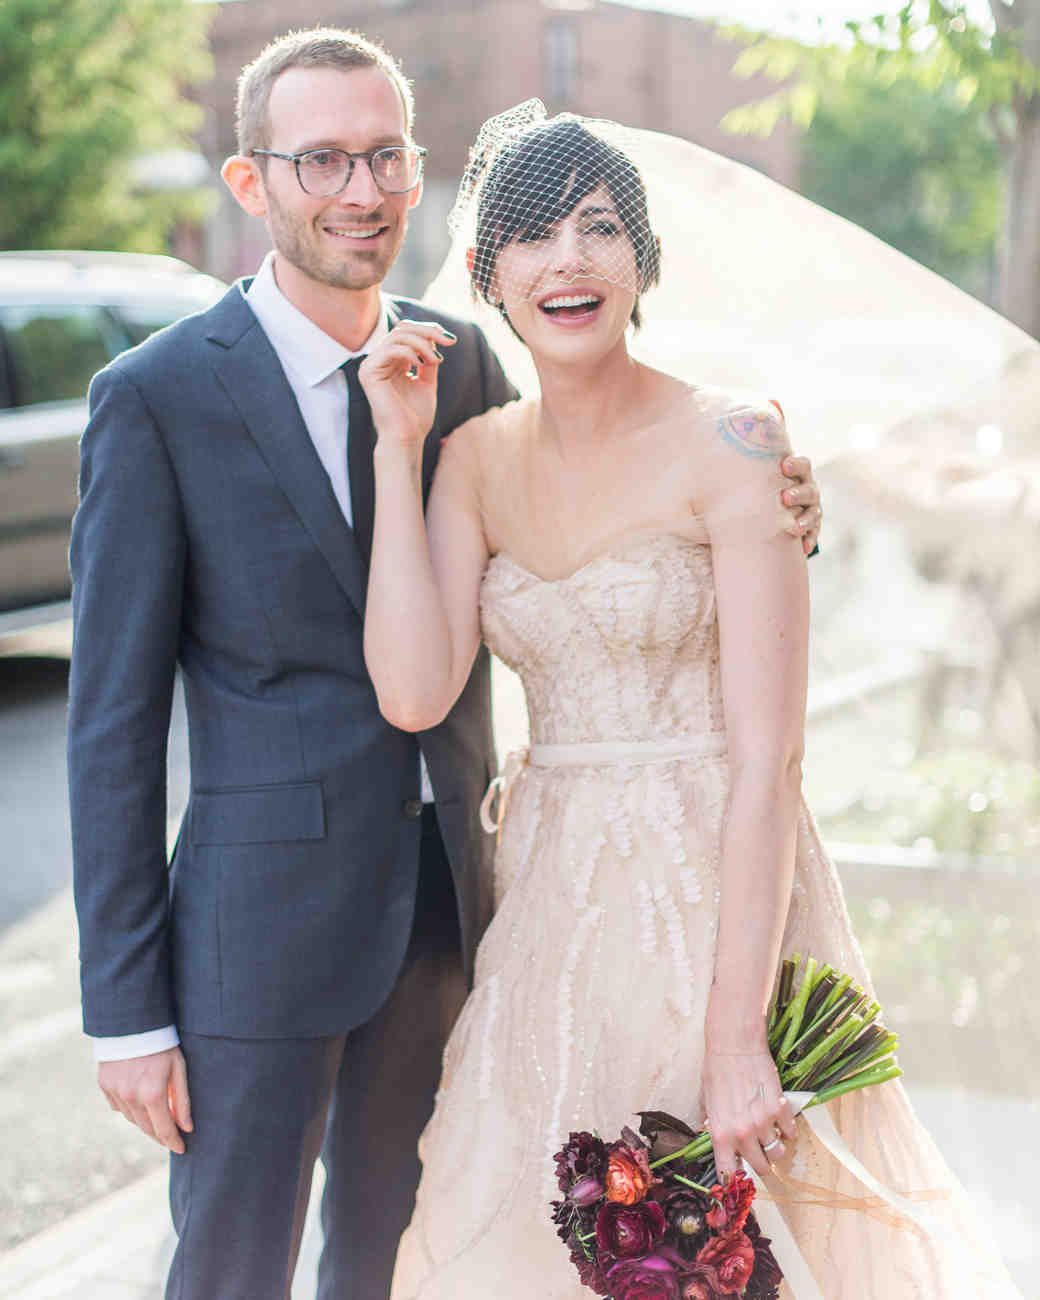 caitlin-michael-wedding-couple-147-s111835-0415.jpg